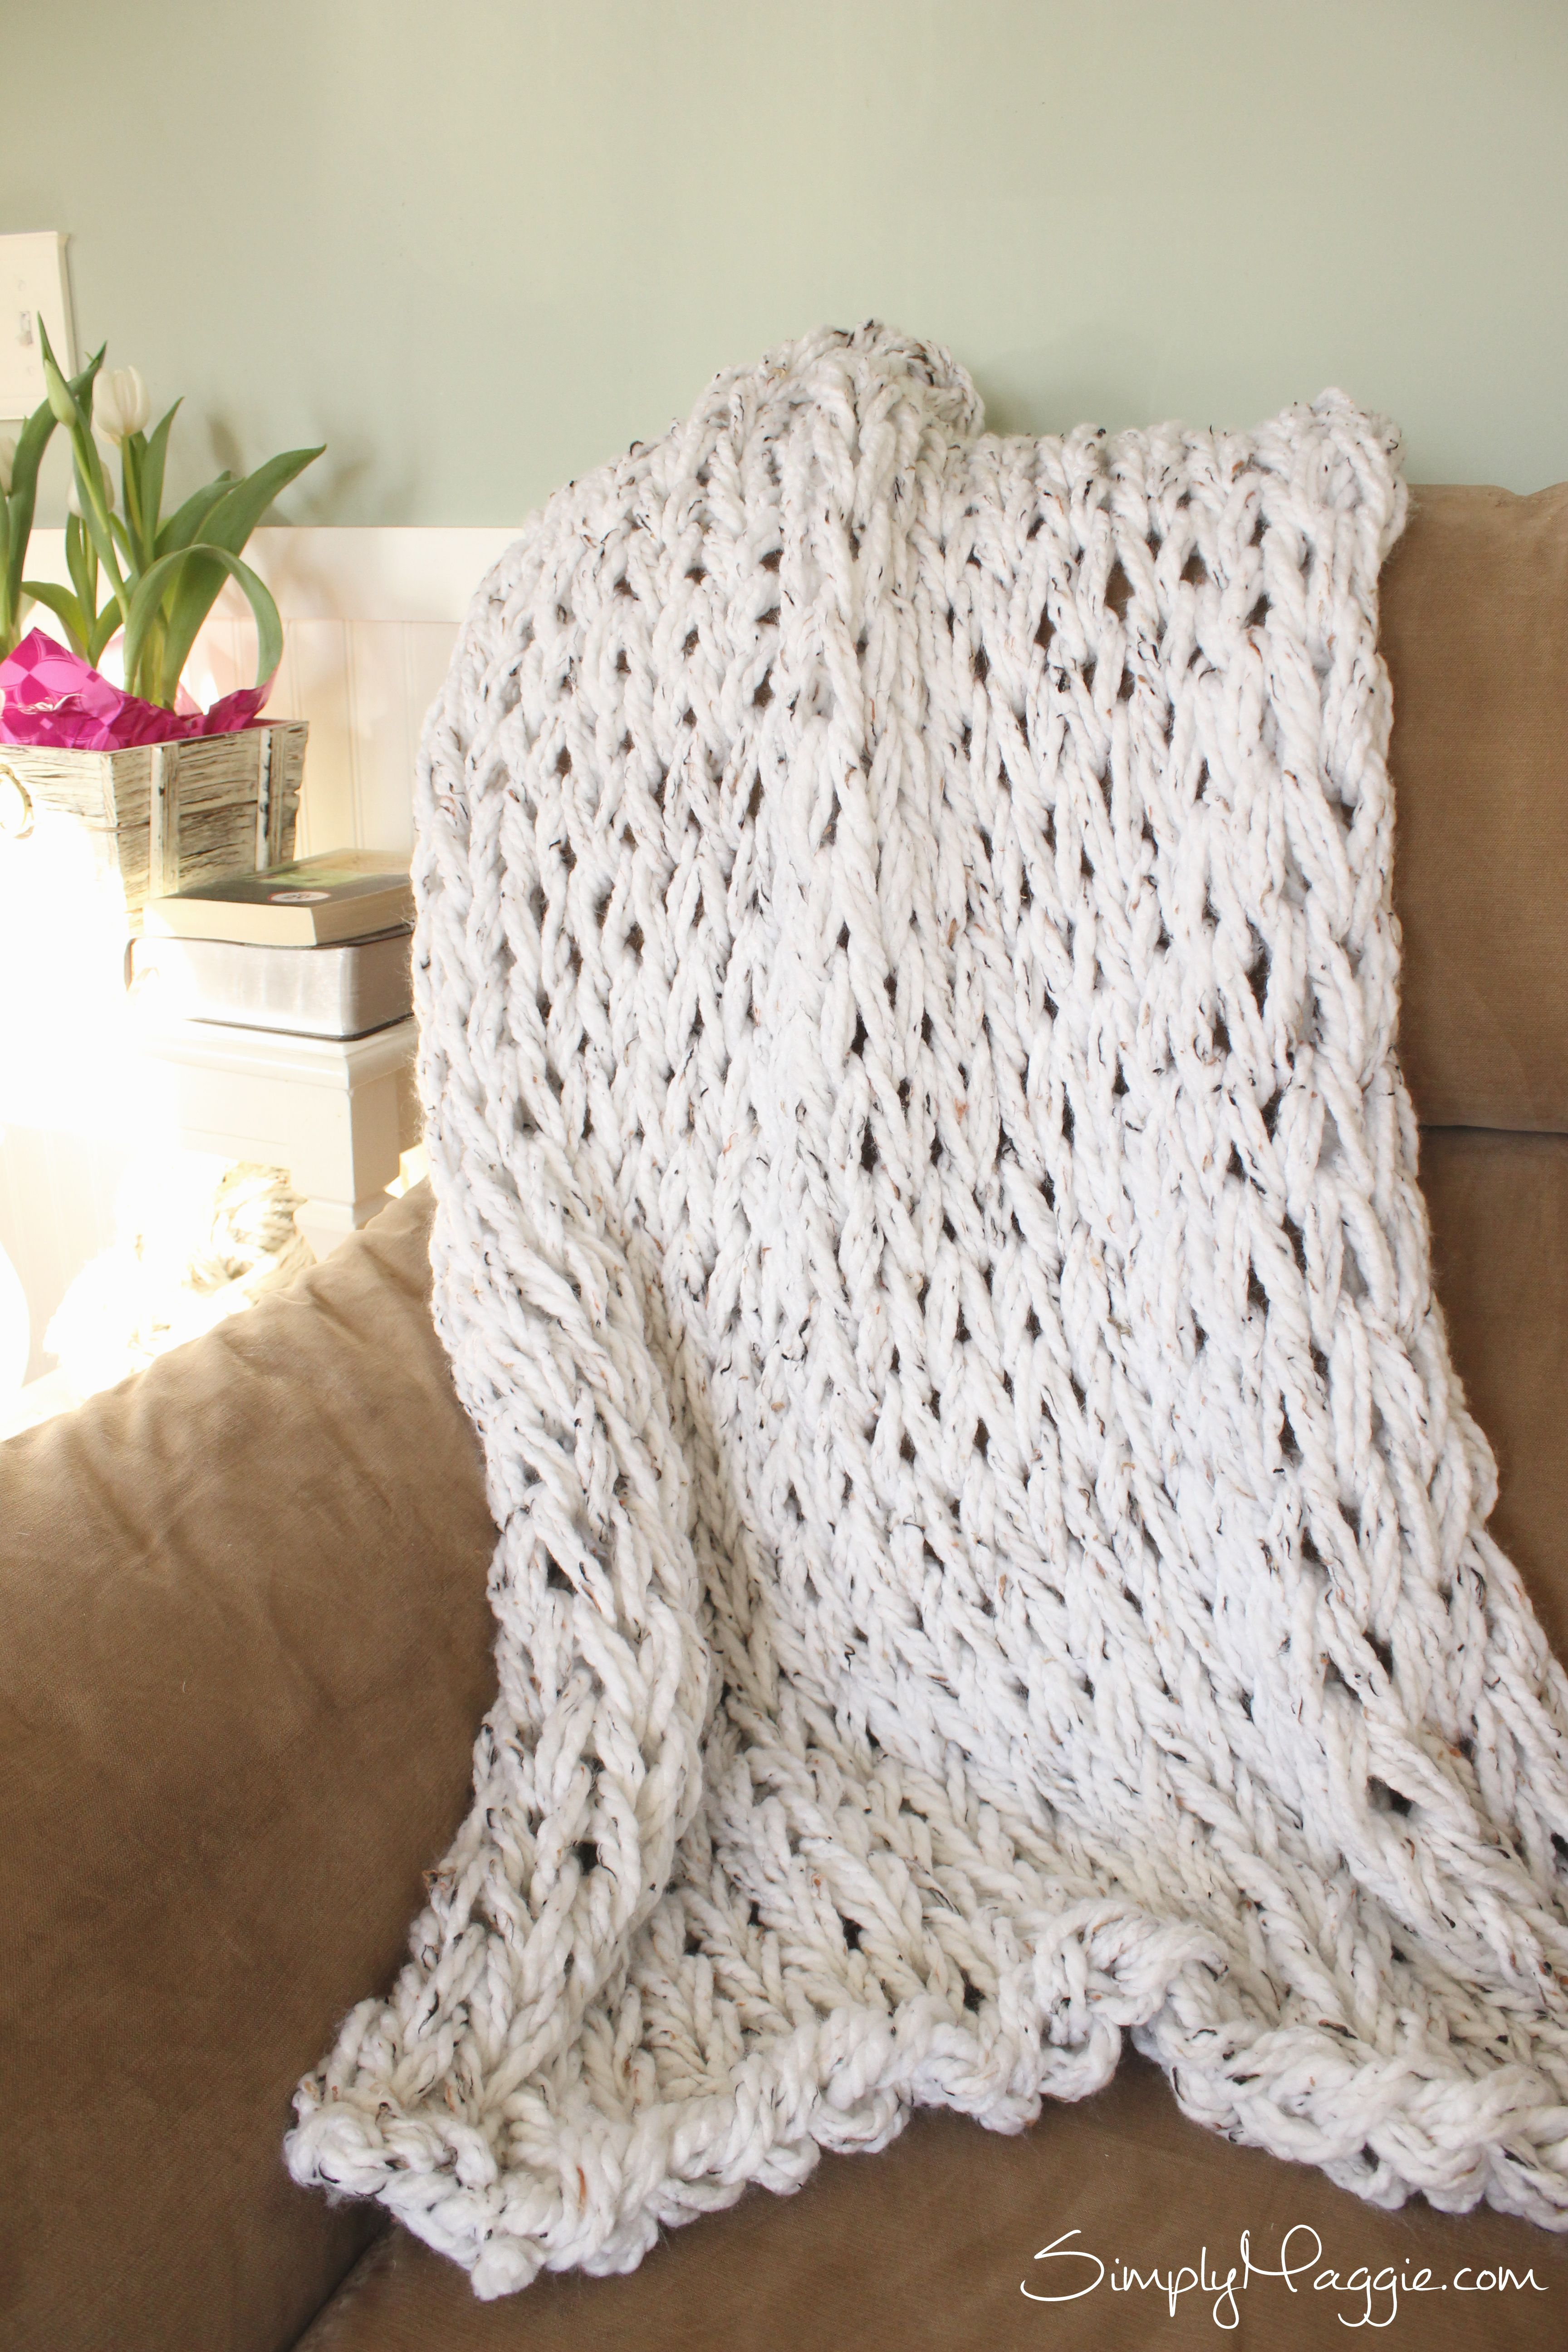 Knit a Blanket in 1 Hour with Simply Maggie   Home Decor   Pinterest ...